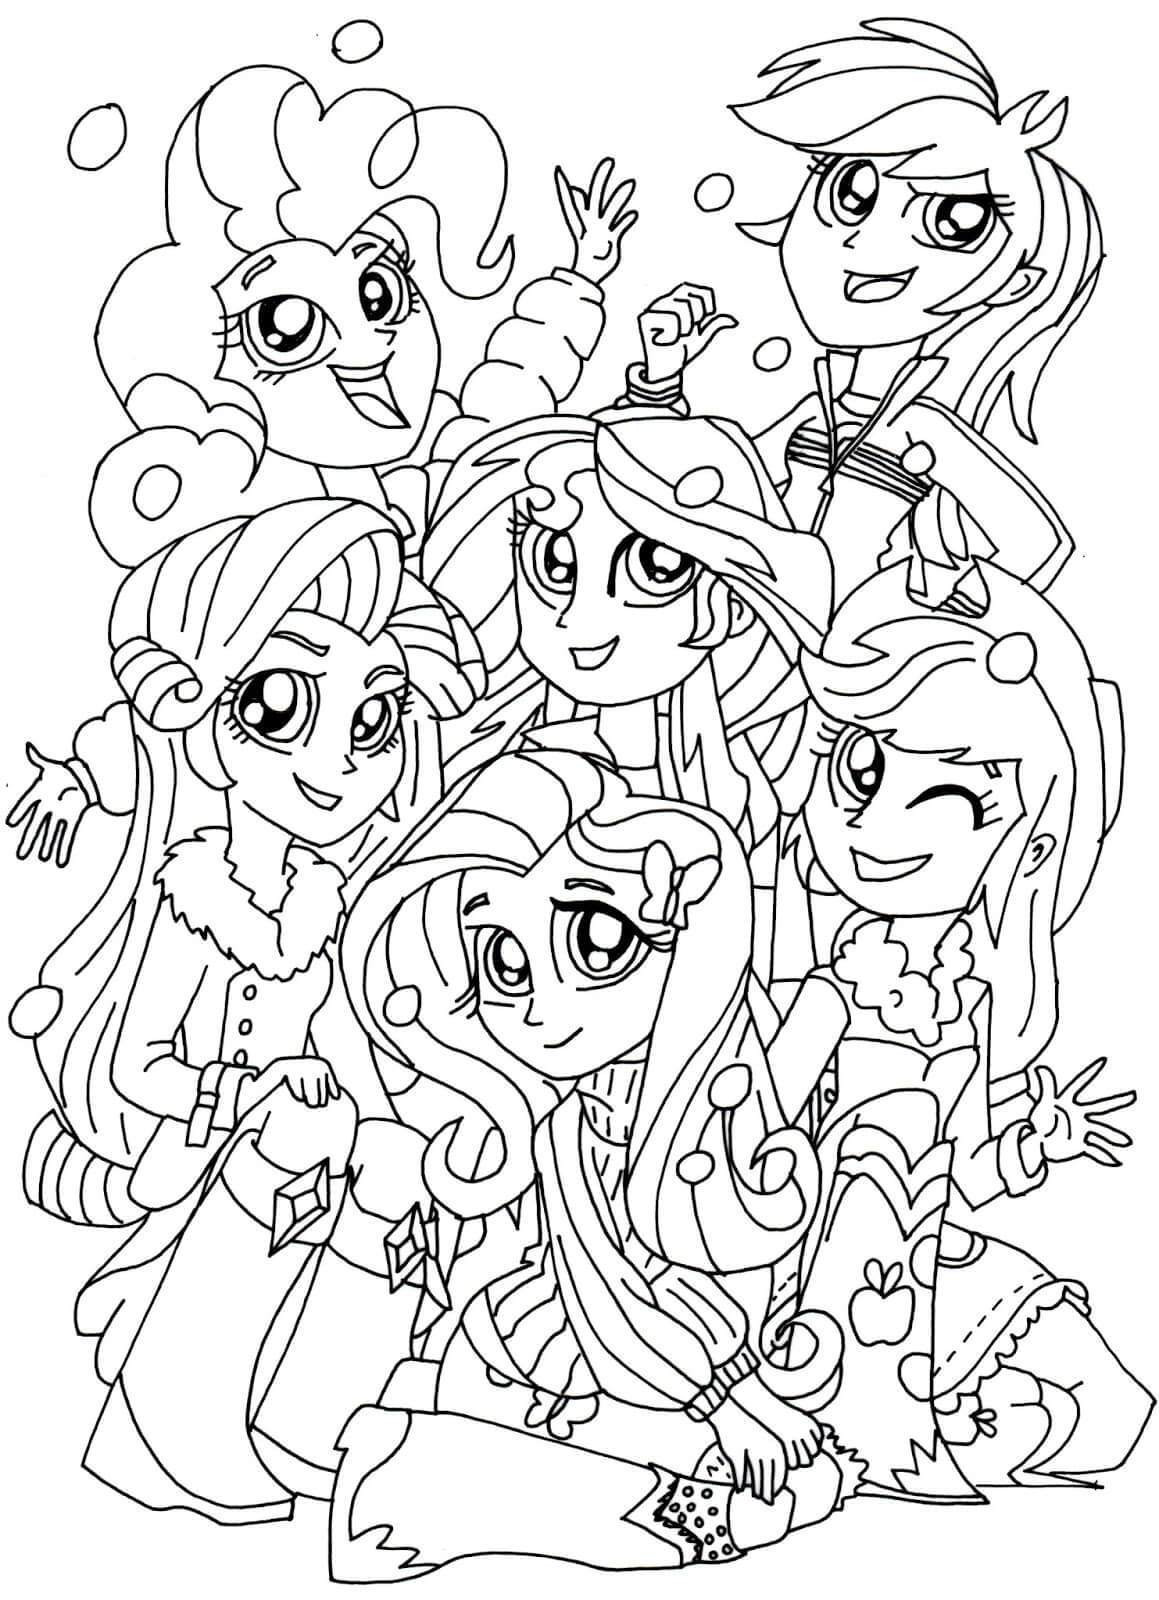 Coloring Sheets For Girls My Little Pony Apple Jack  My Little Pony Equestria Girls Coloring Pages